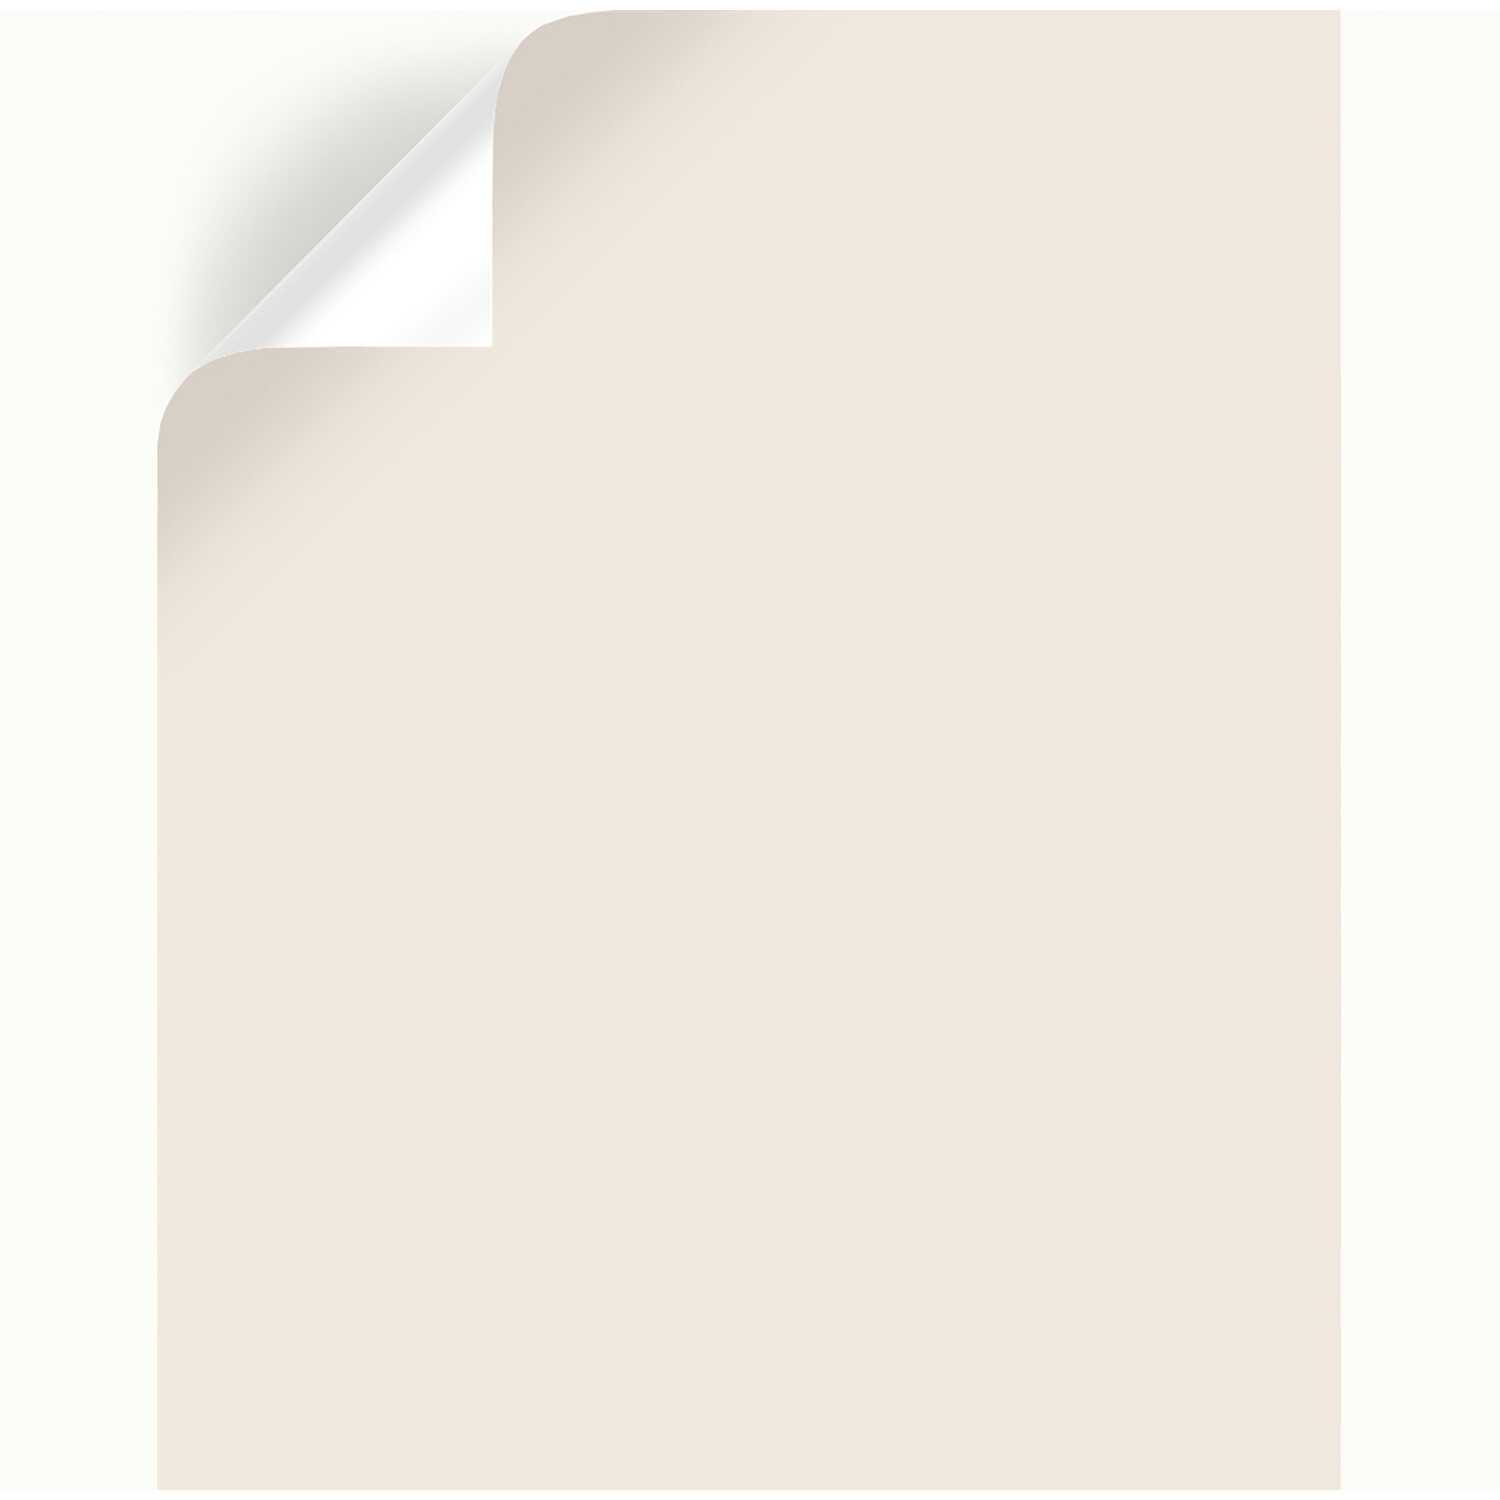 Magnolia Home by Joanna Gaines  Antique Rose  Peel & Stick Color Sample